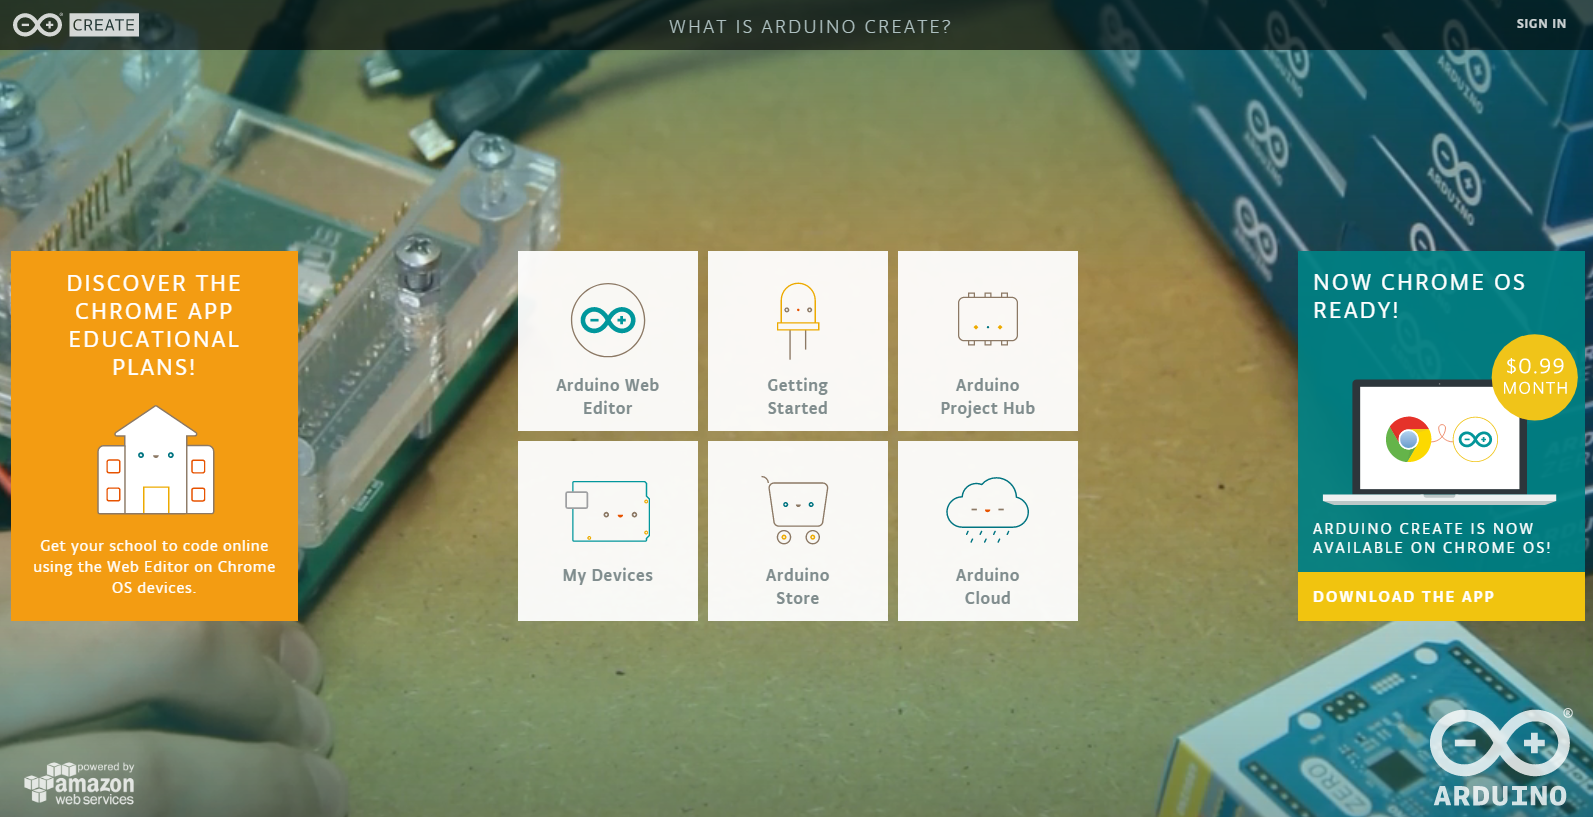 Program Pi, BeagleBone and Other Linux SBCs On The Arduino Create Platform